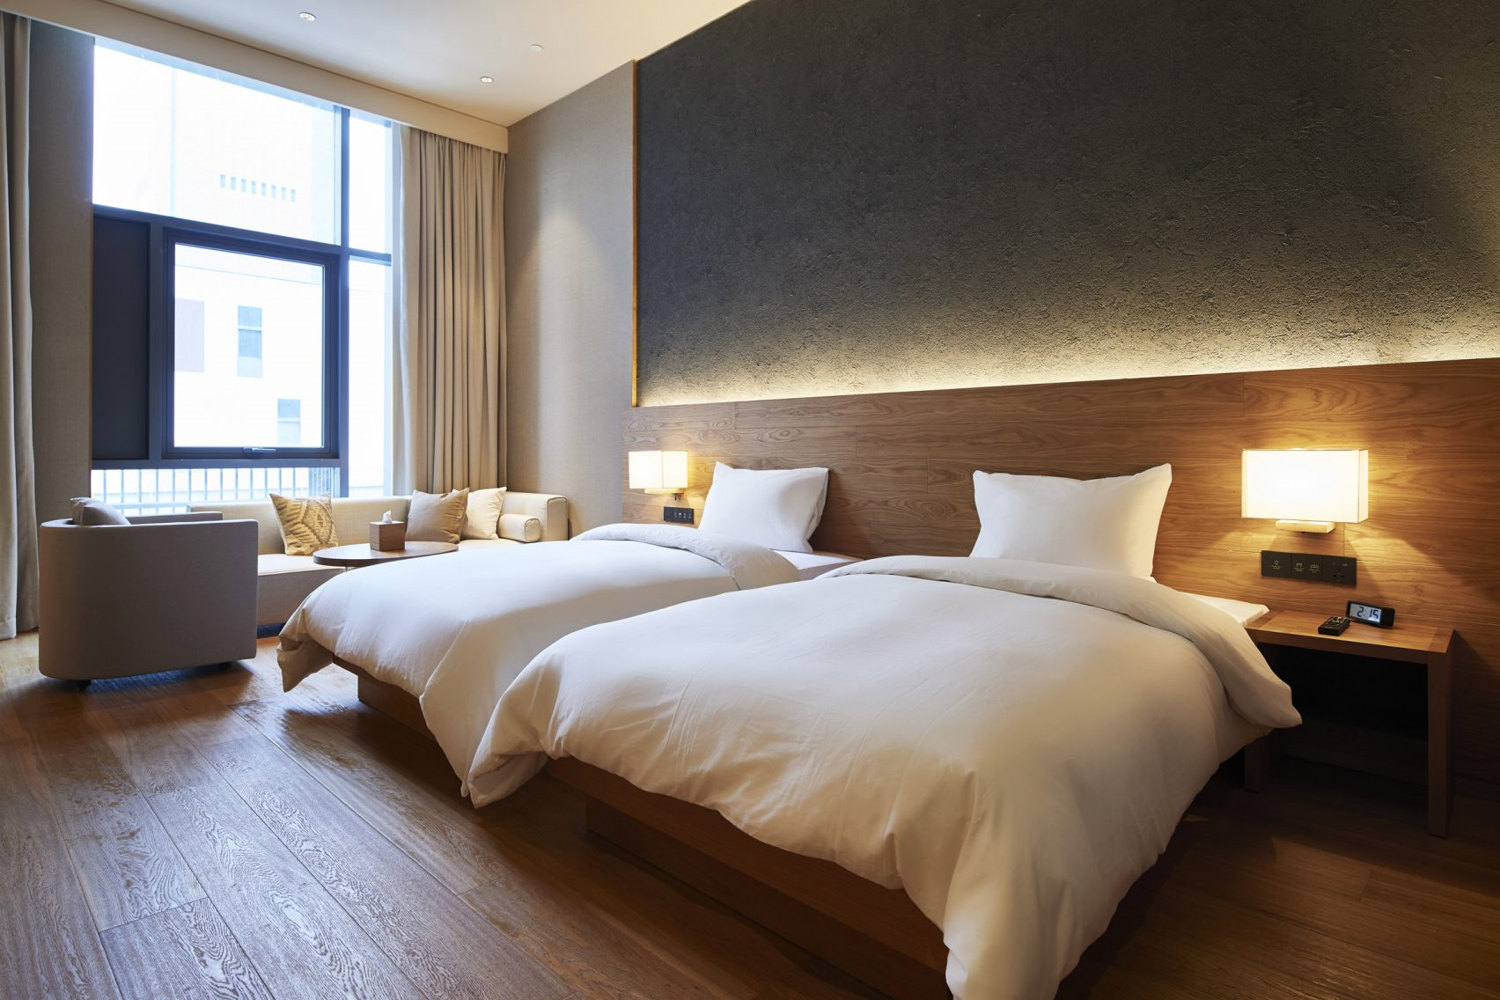 Hotel room design trends what travellers want in their for Hotel design italia